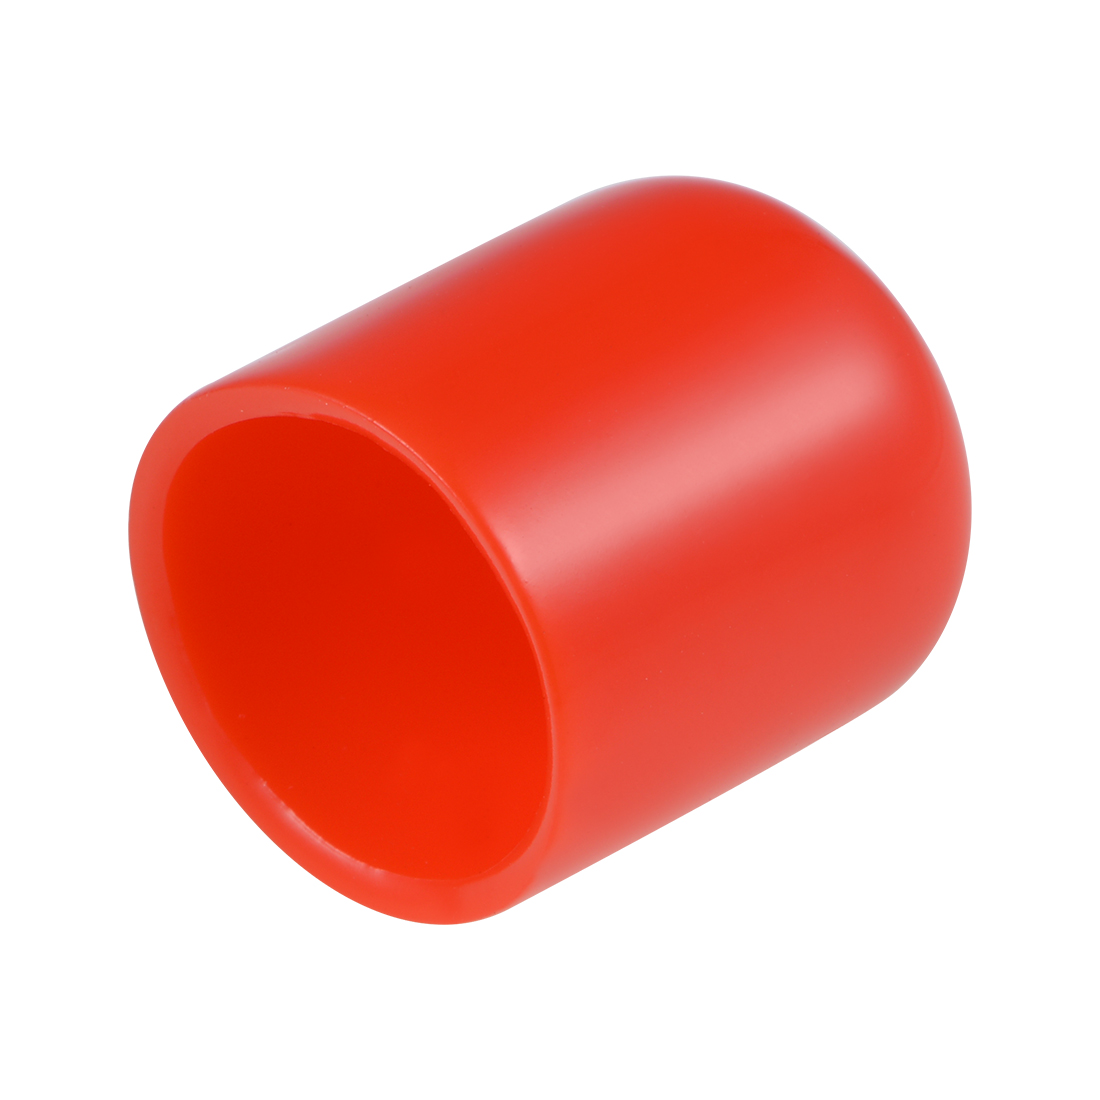 Screw Thread Protector, 18mm ID Round End Cap Cover Red Tube Caps 20pcs